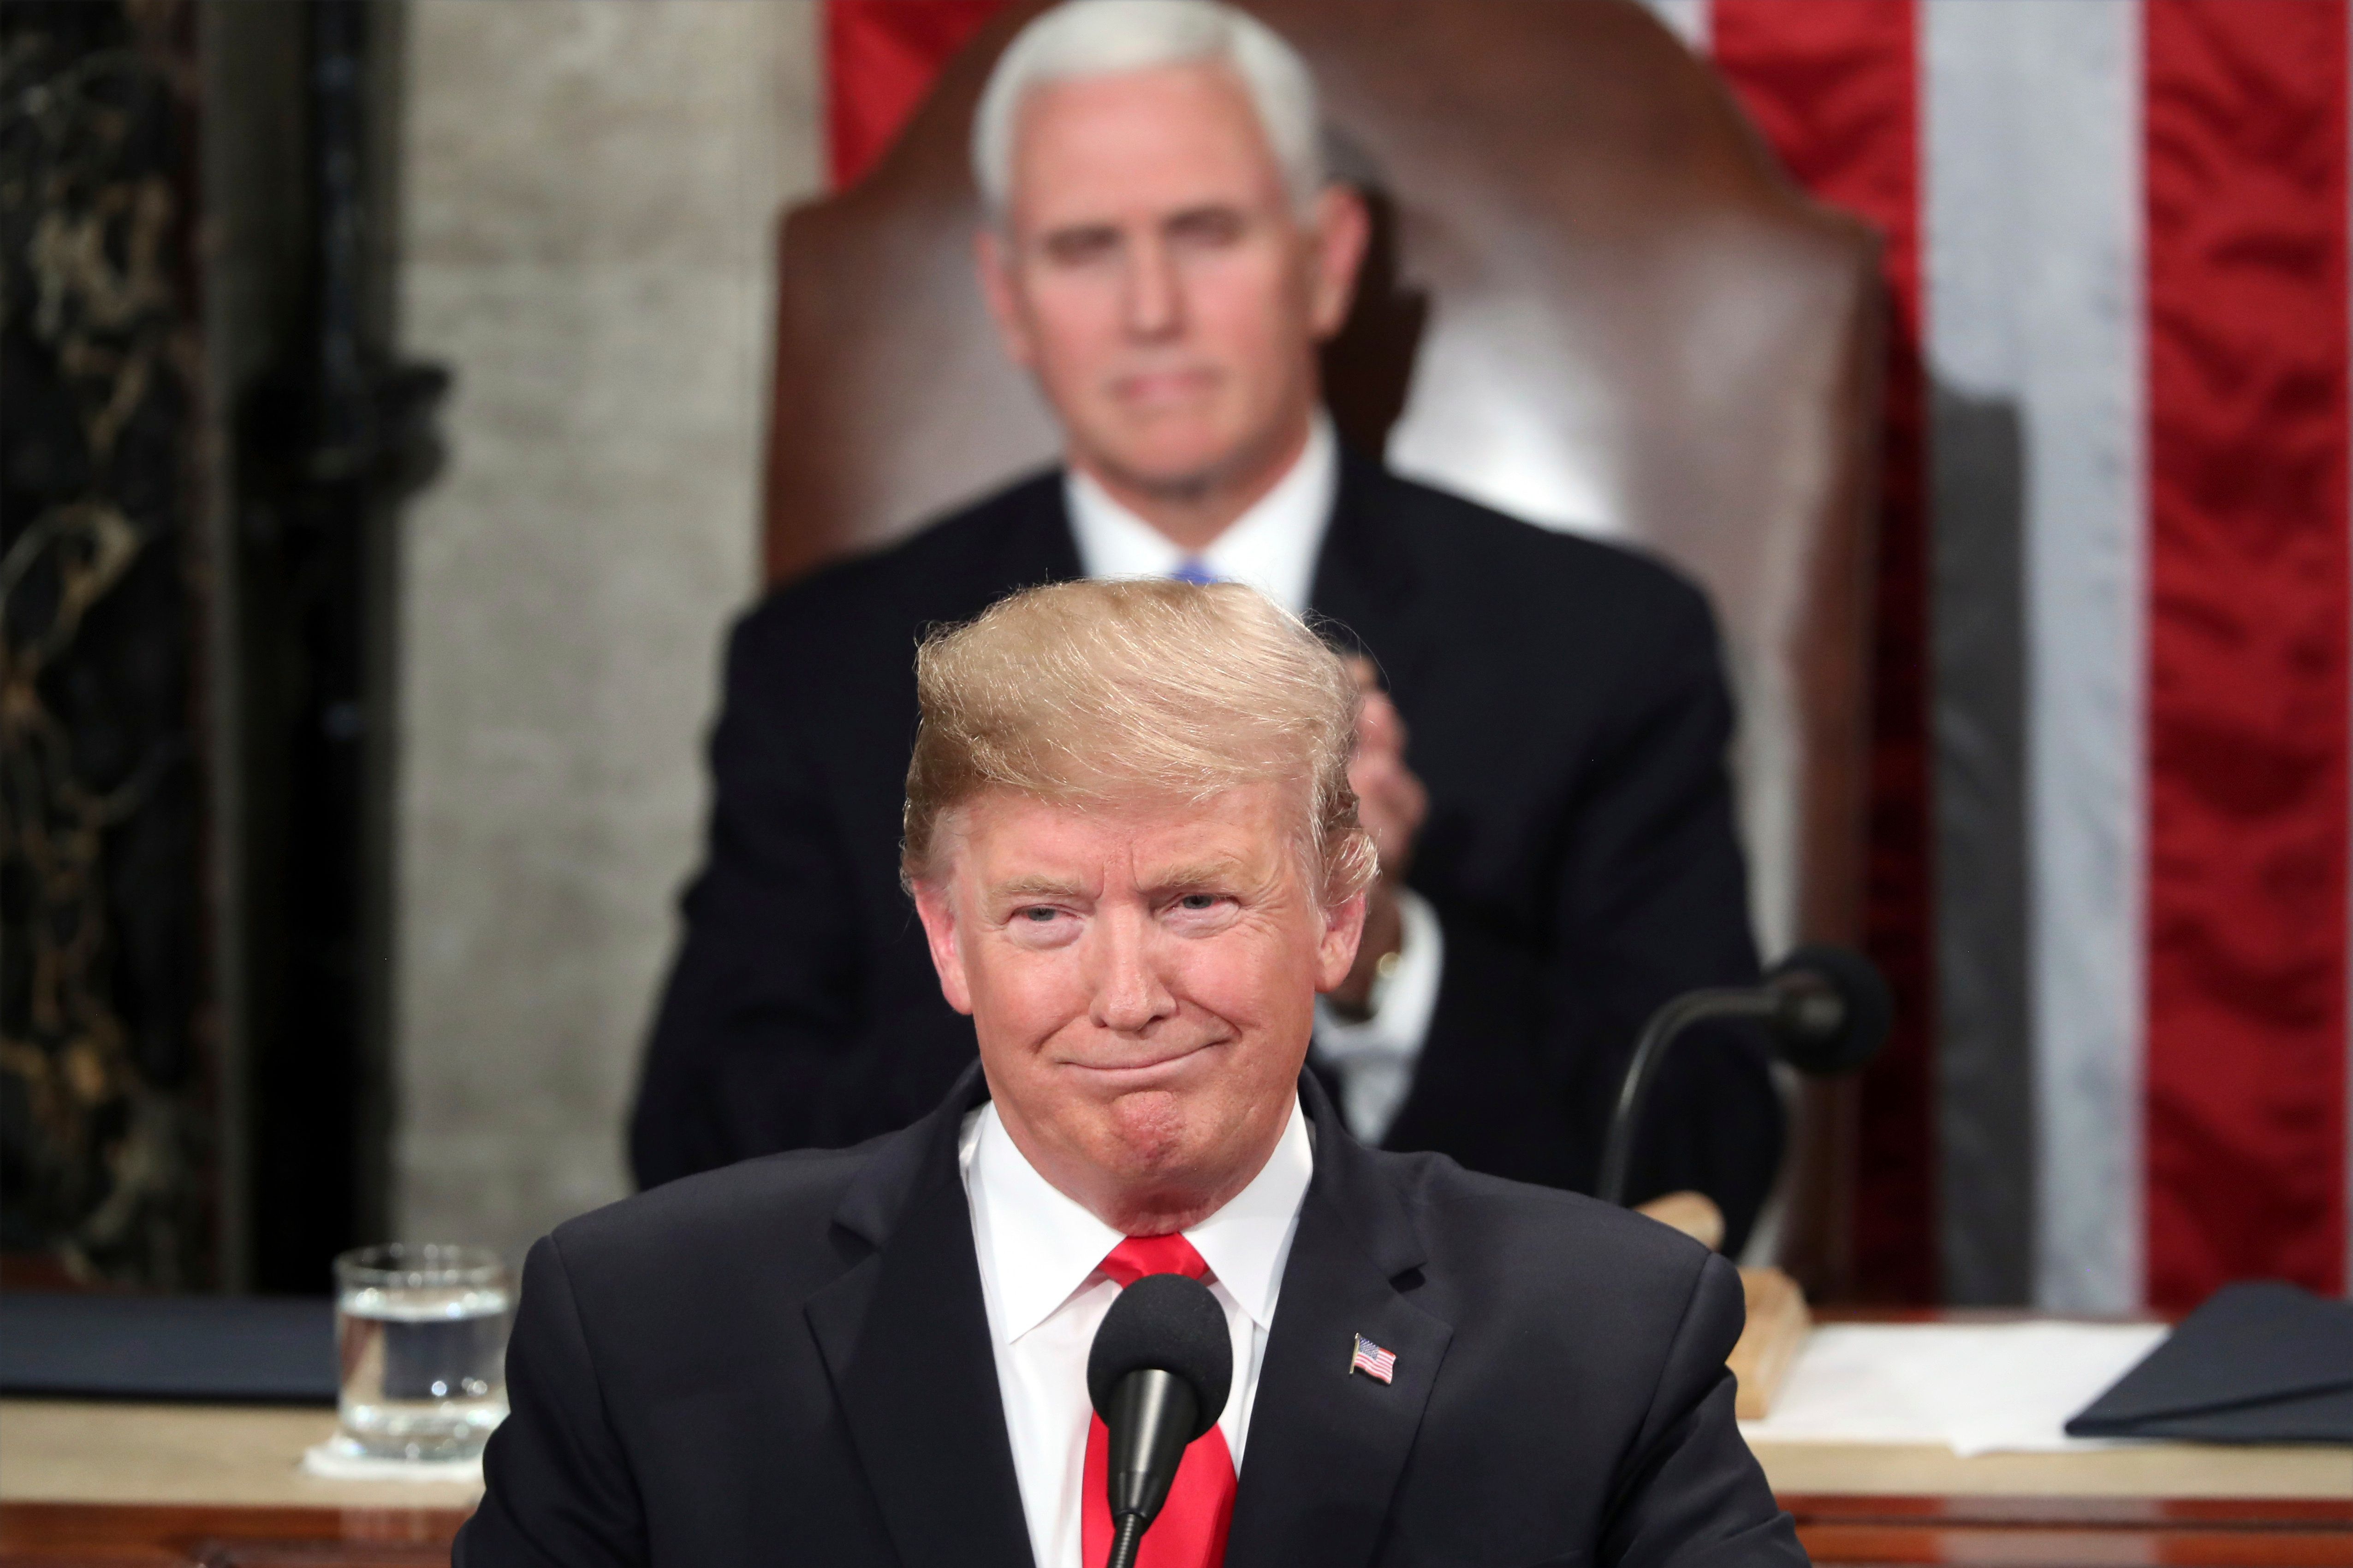 President Donald Trump delivers the State of the Union address on Tuesday.